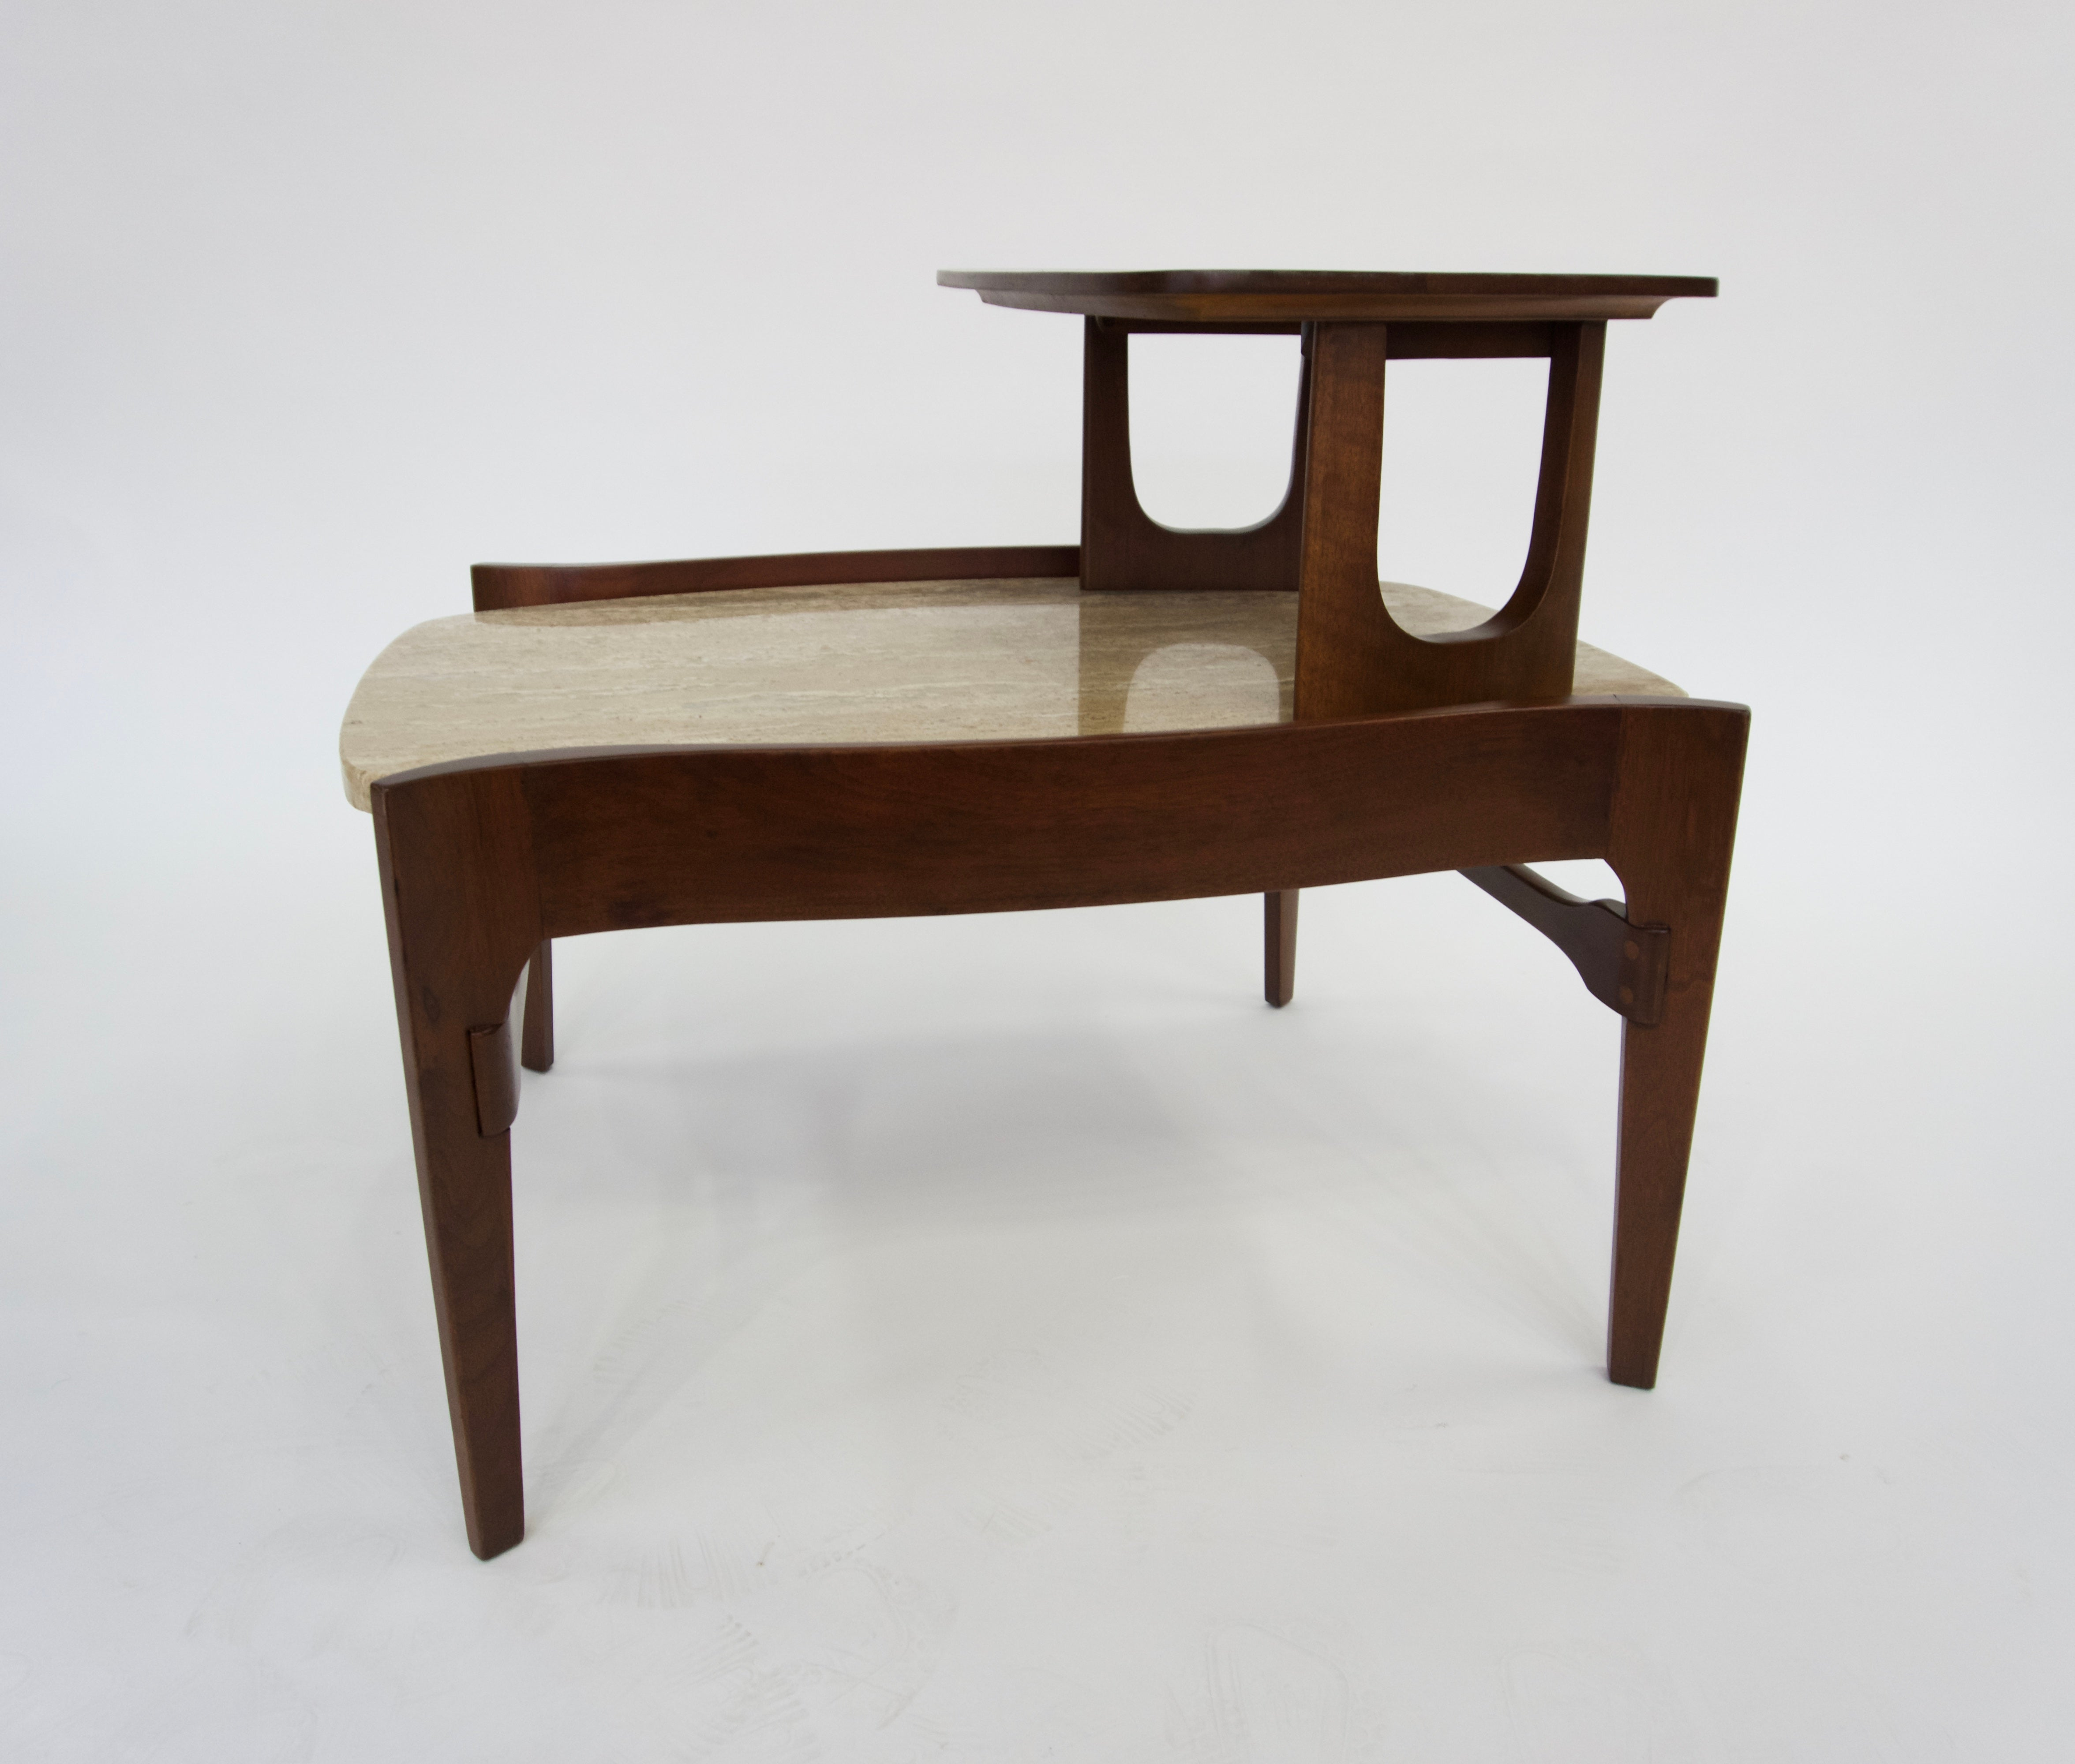 Gordon Furniture Pair Of Travertine Step End Tables For Sale At 1stdibs